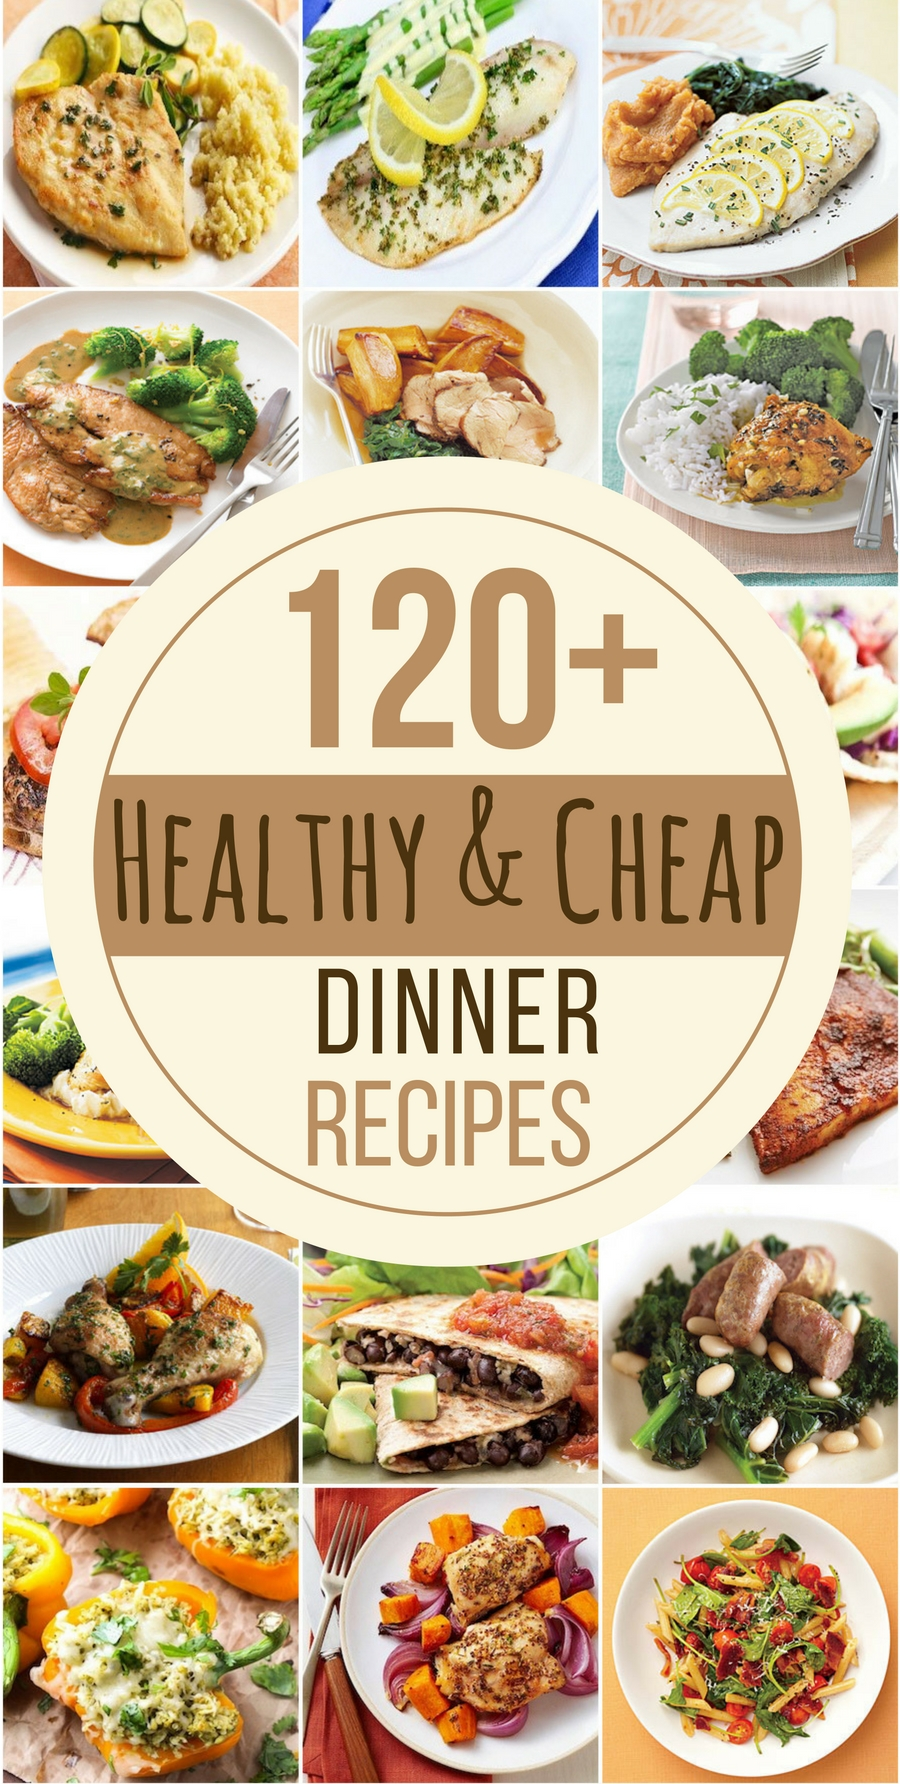 10 Most Recommended Healthy Meal Ideas For Dinner 120 healthy and cheap dinner recipes prudent penny pincher 2021